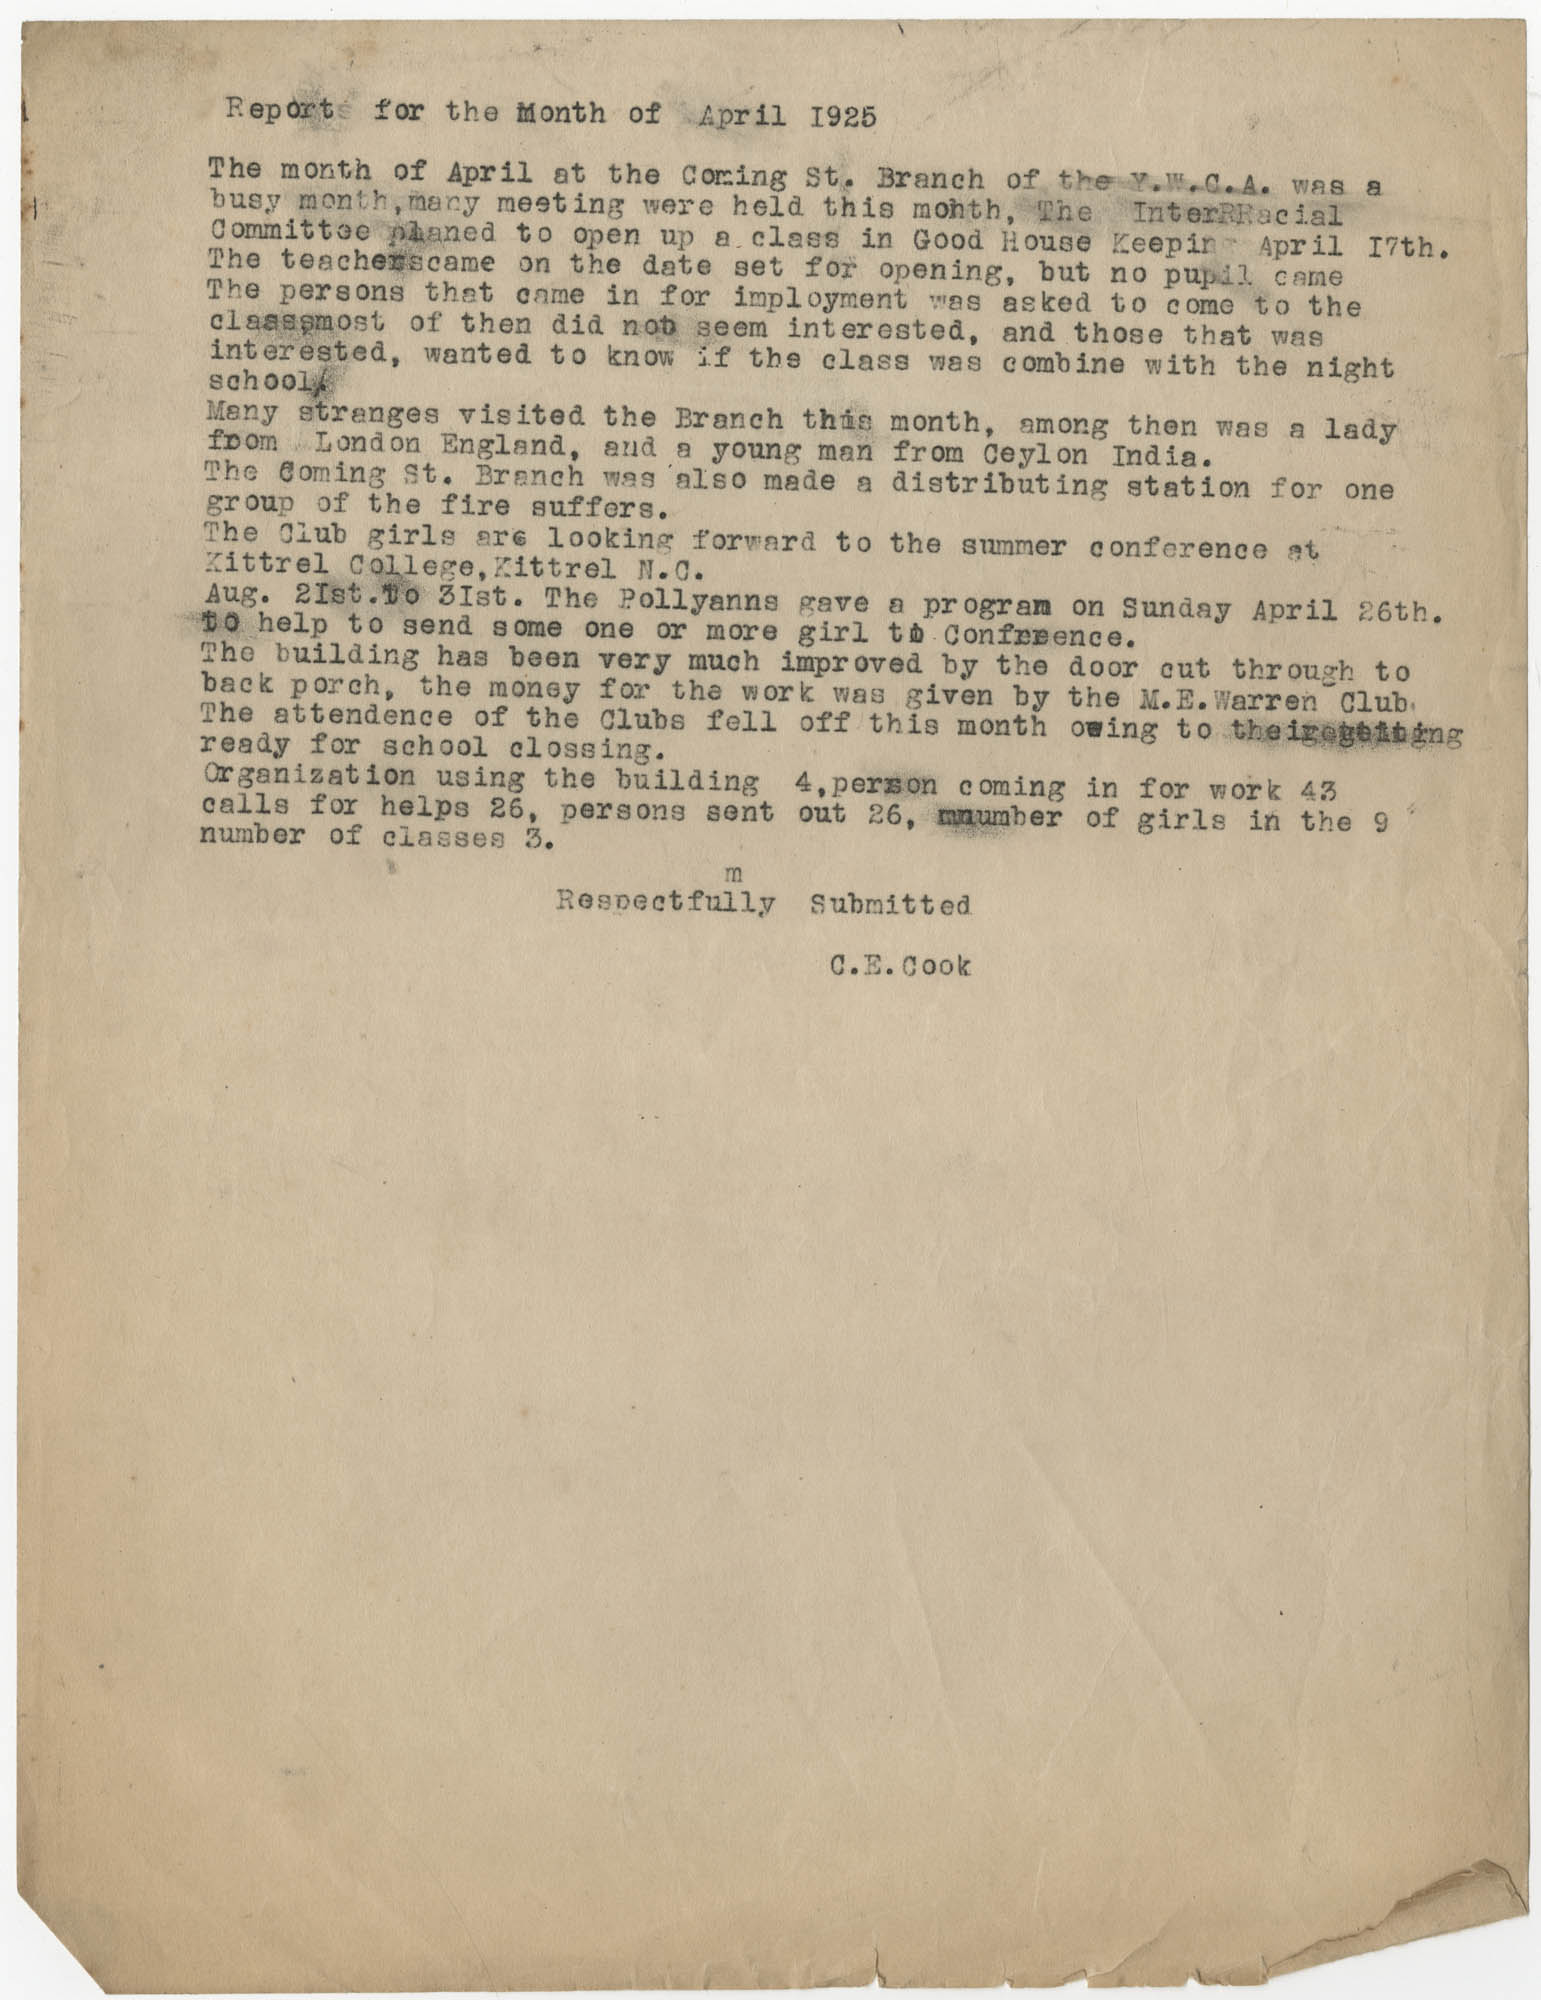 Monthly Report for the Coming Street Y.W.C.A., April 1925